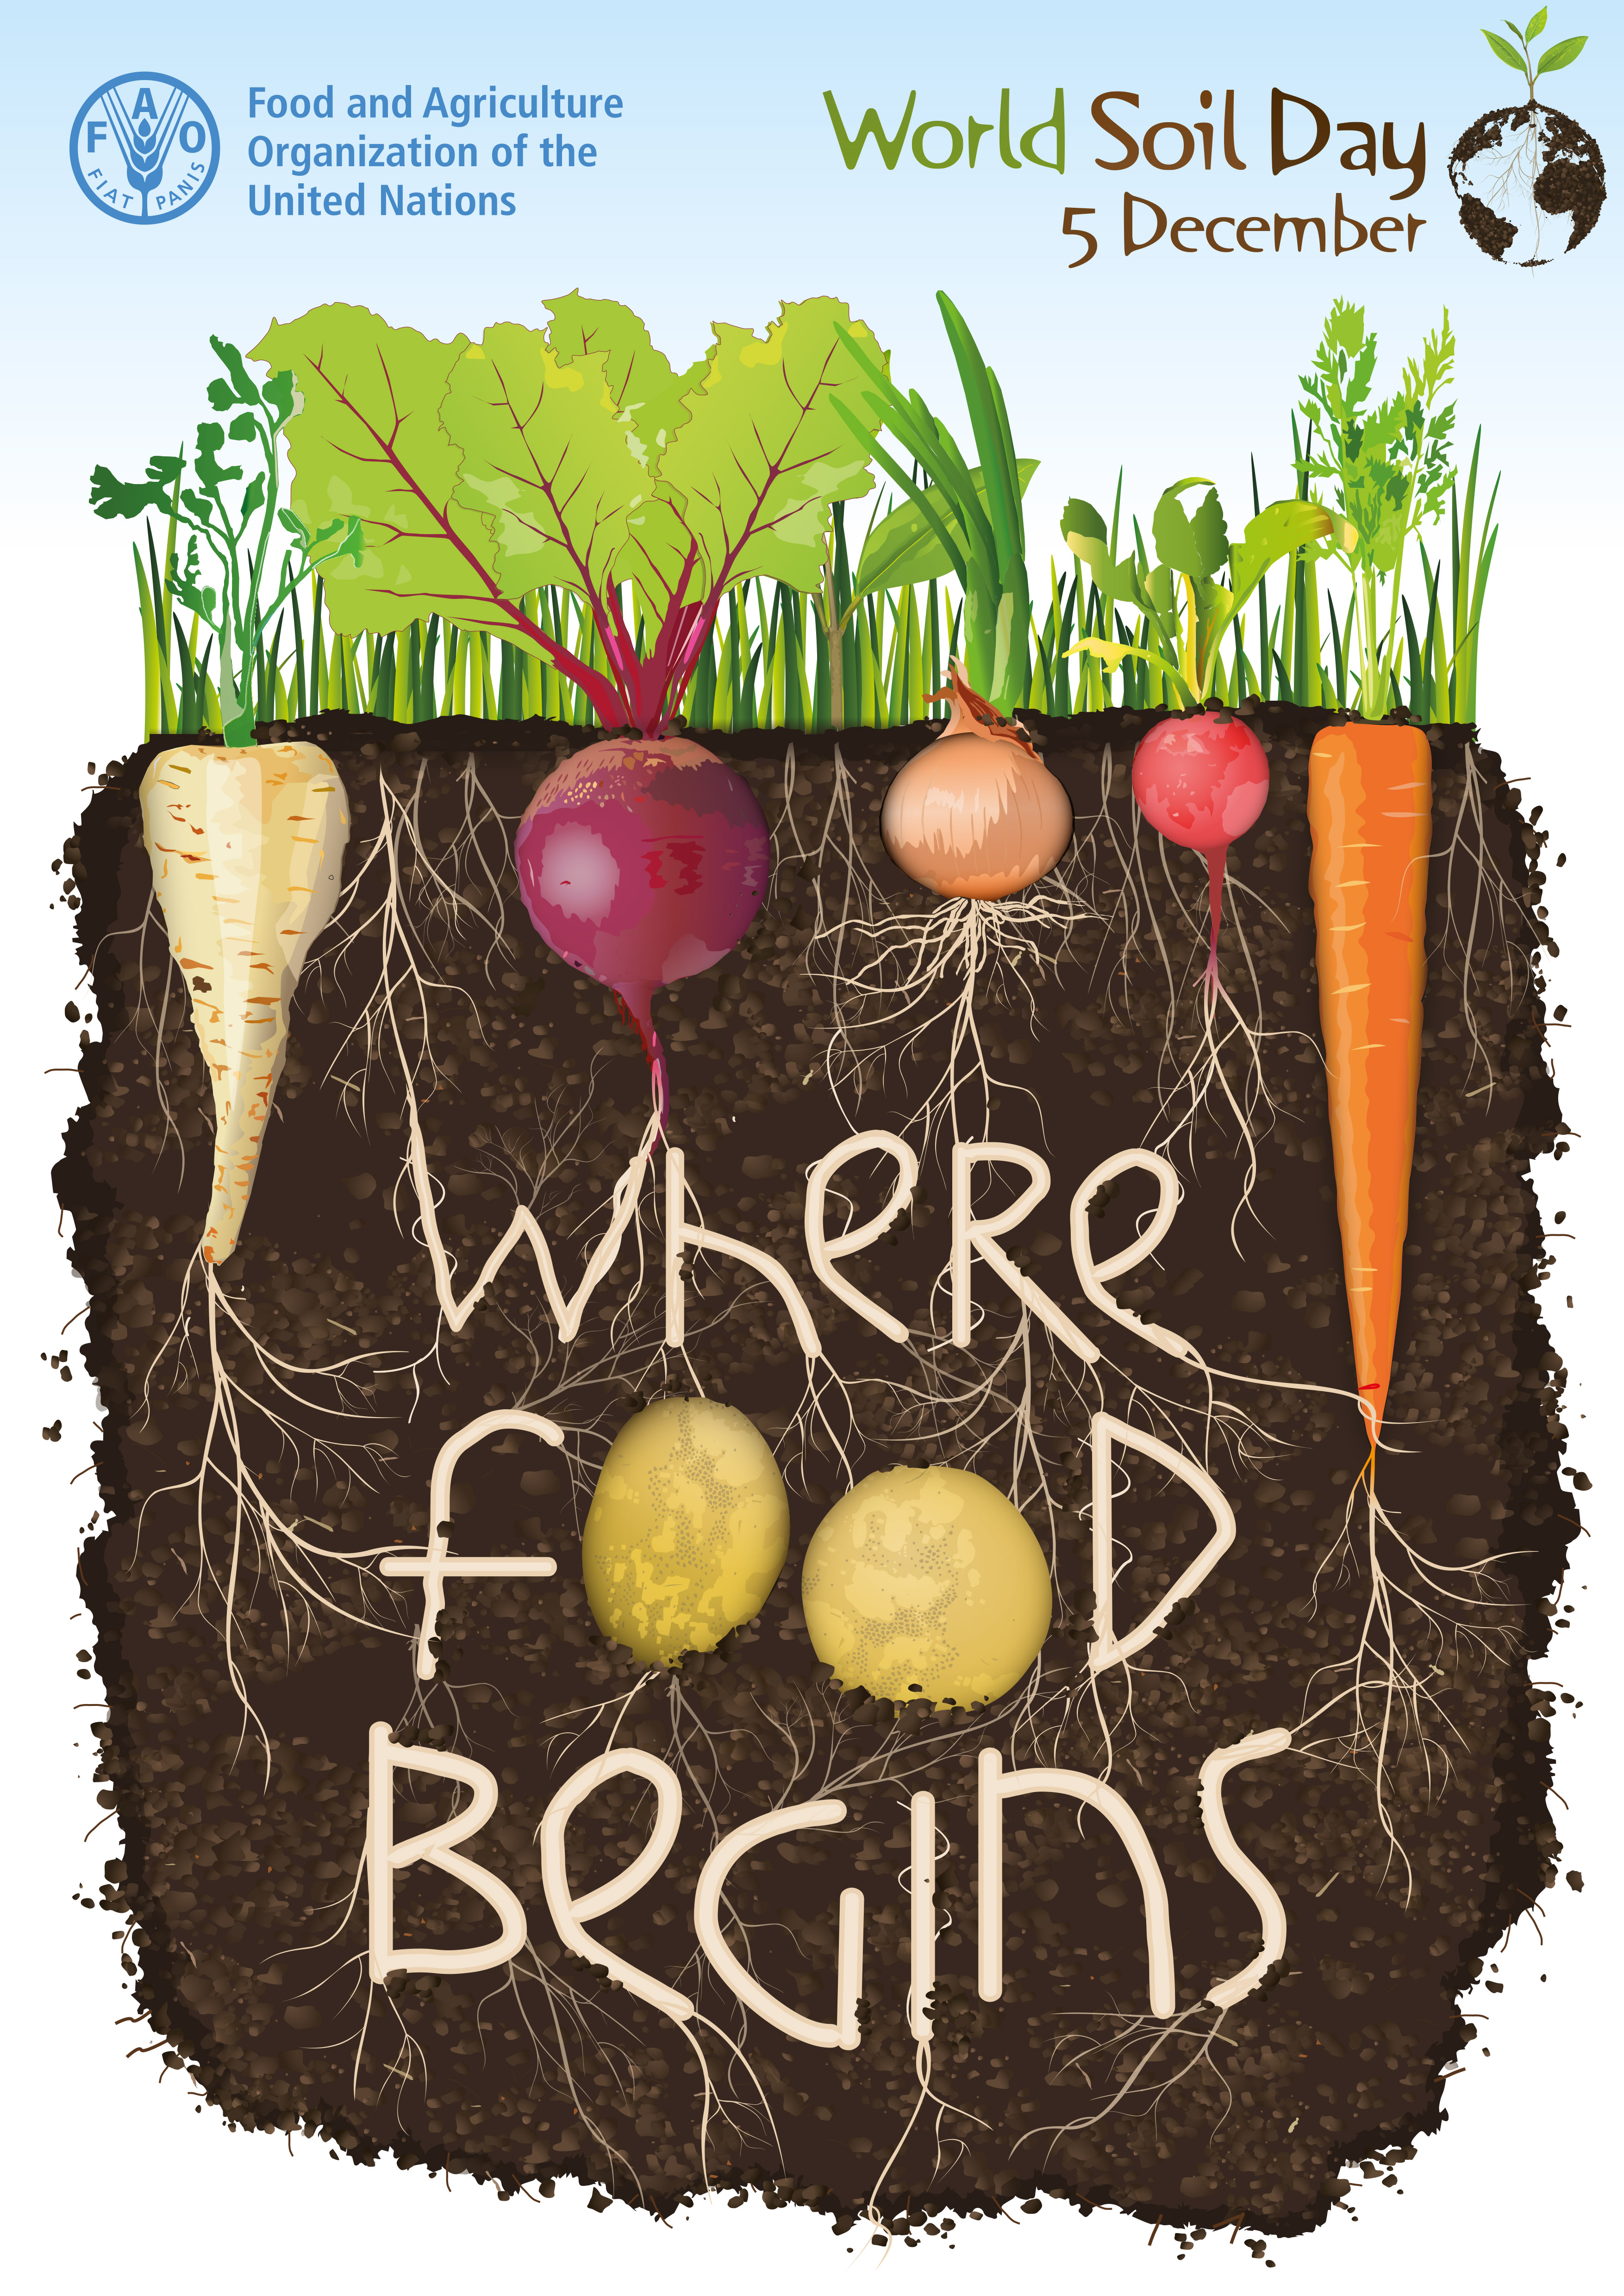 WSD2016 | Global Soil Partnership | Food and Agriculture Organization of the United Nations